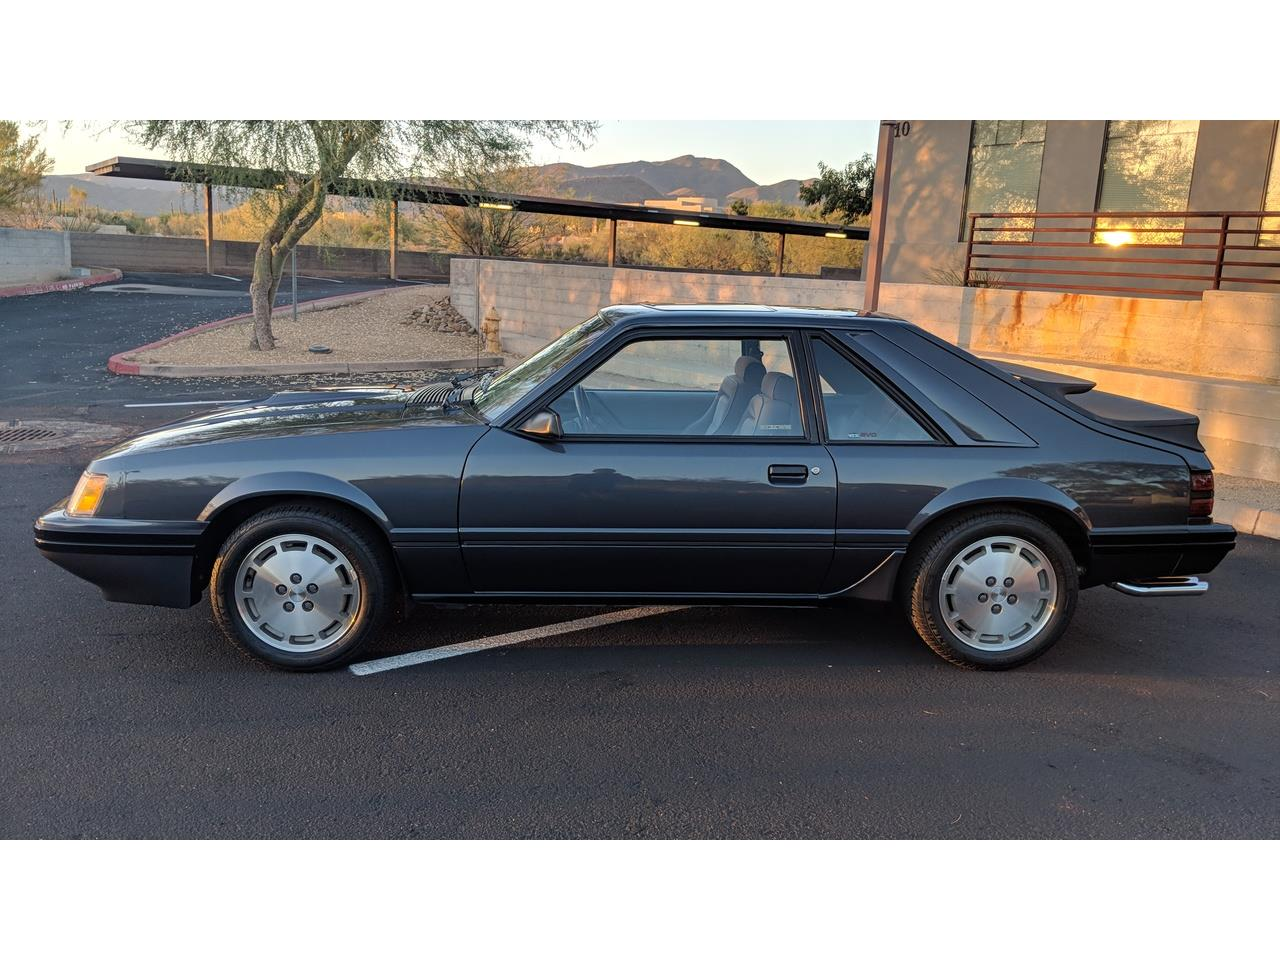 Large Picture of 1984 Mustang SVO located in North Phoenix Arizona - $15,800.00 Offered by a Private Seller - MXZ6